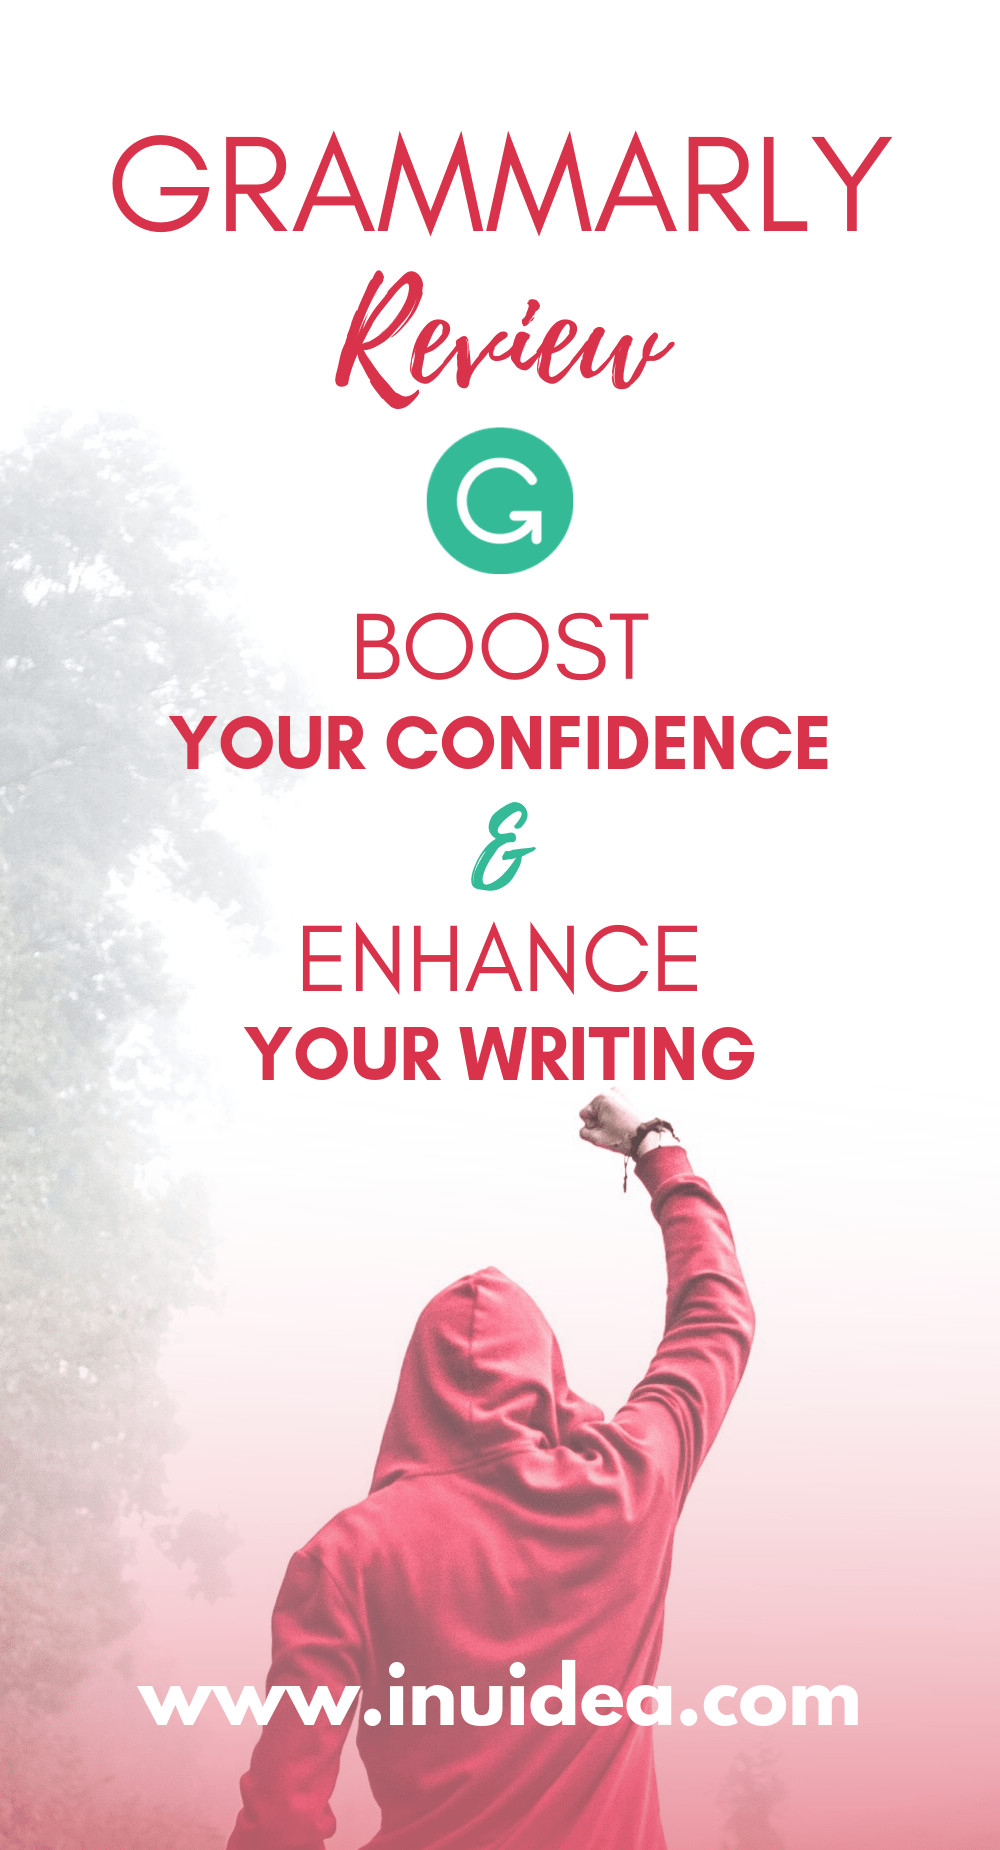 Grammarly Proofreading Software Savings Coupon Code April 2020